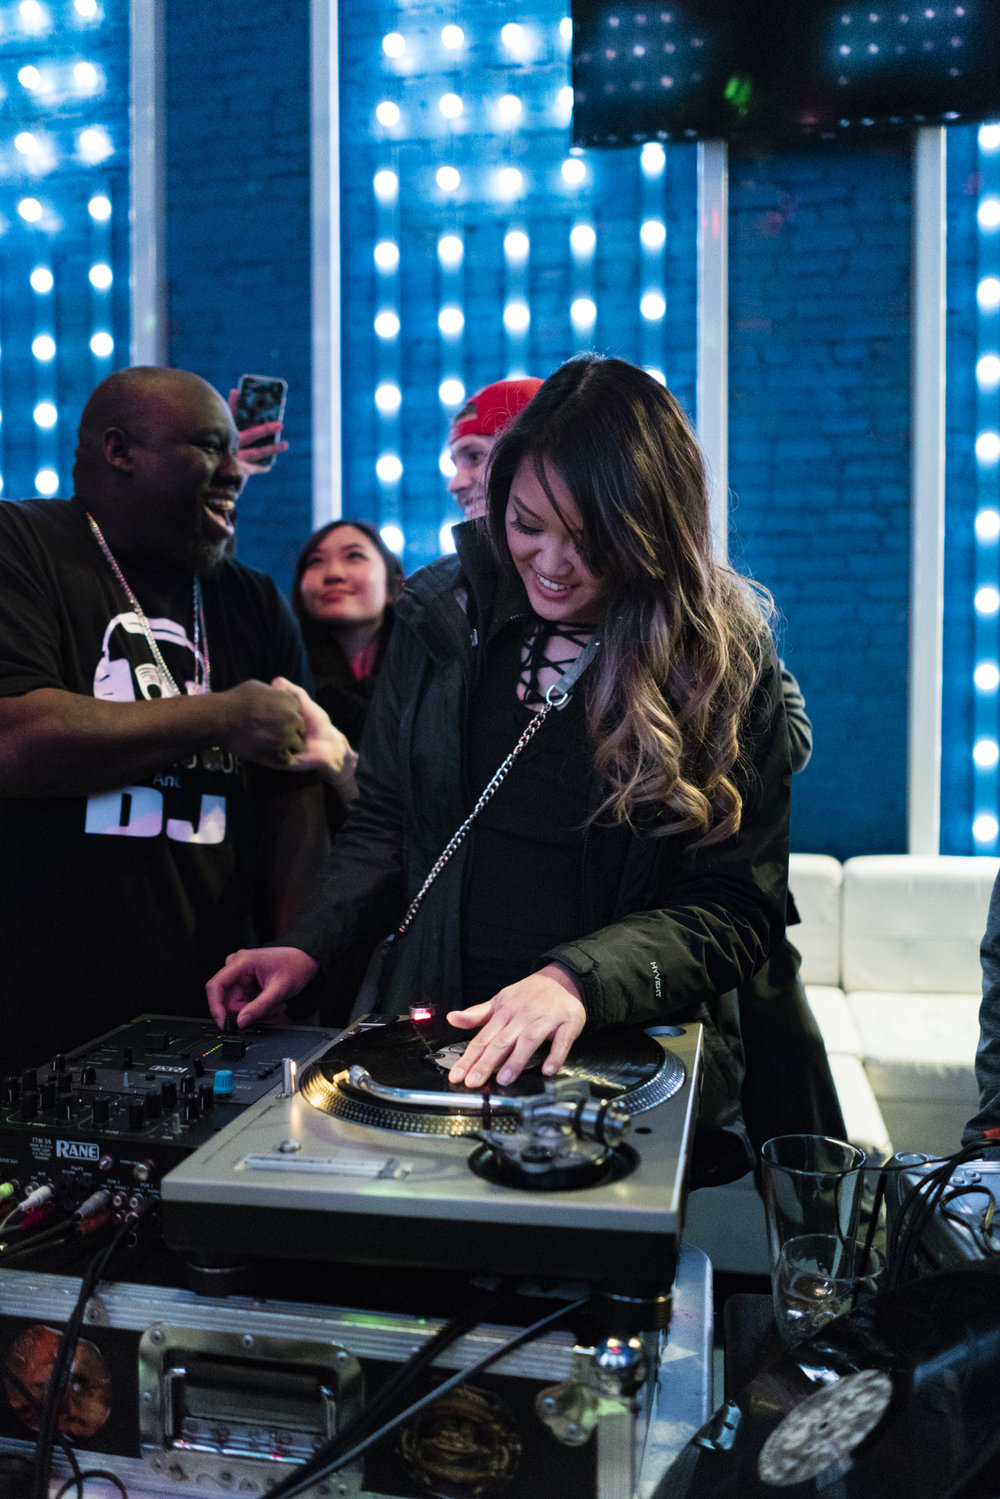 2017_02_02_Skratch Lounge_0087_Export.jpg